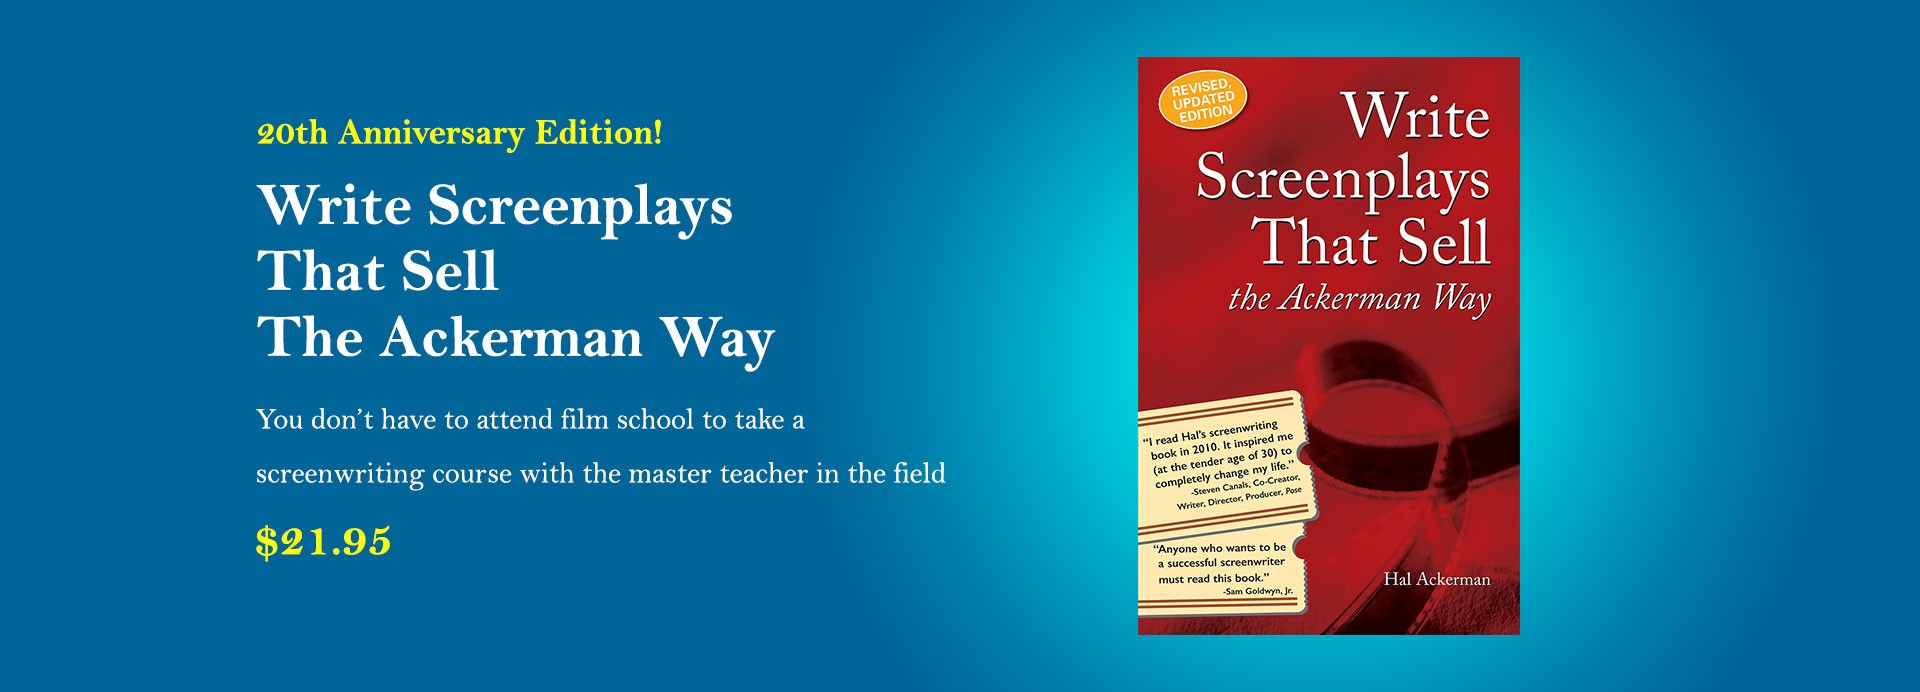 You don't have to attend film school to take a screenwriting course with the master teacher in the field